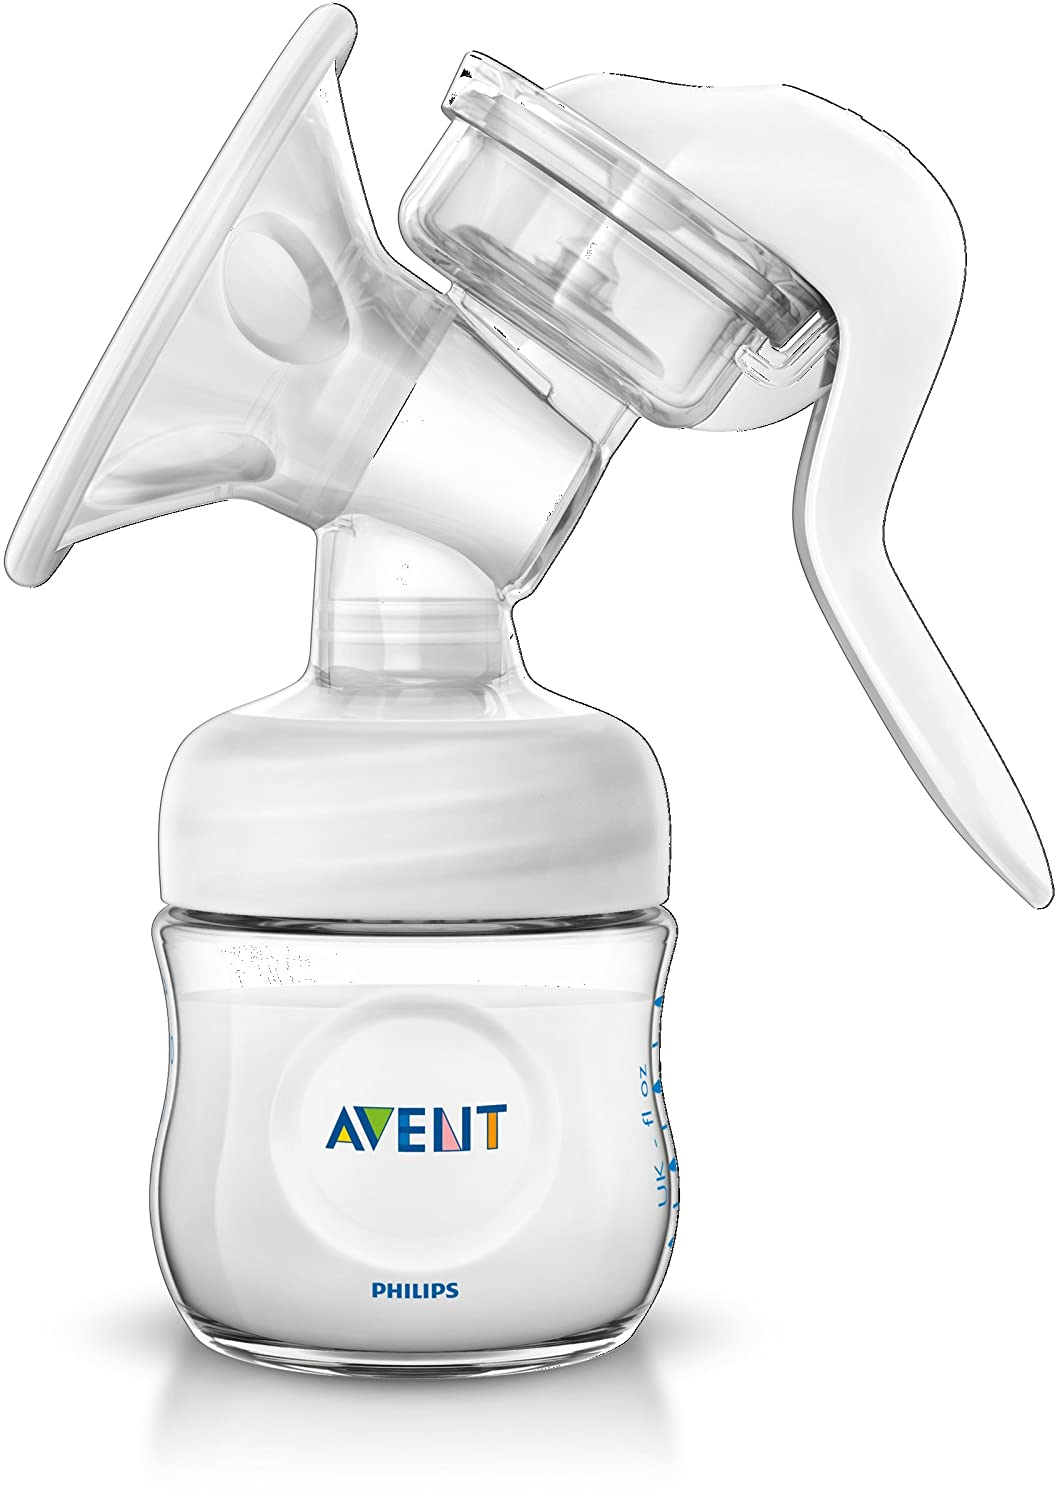 Philips Avent Breast Pump Manual Scf330 20 Baby Nipple Natural Baru New Design Extra Soft